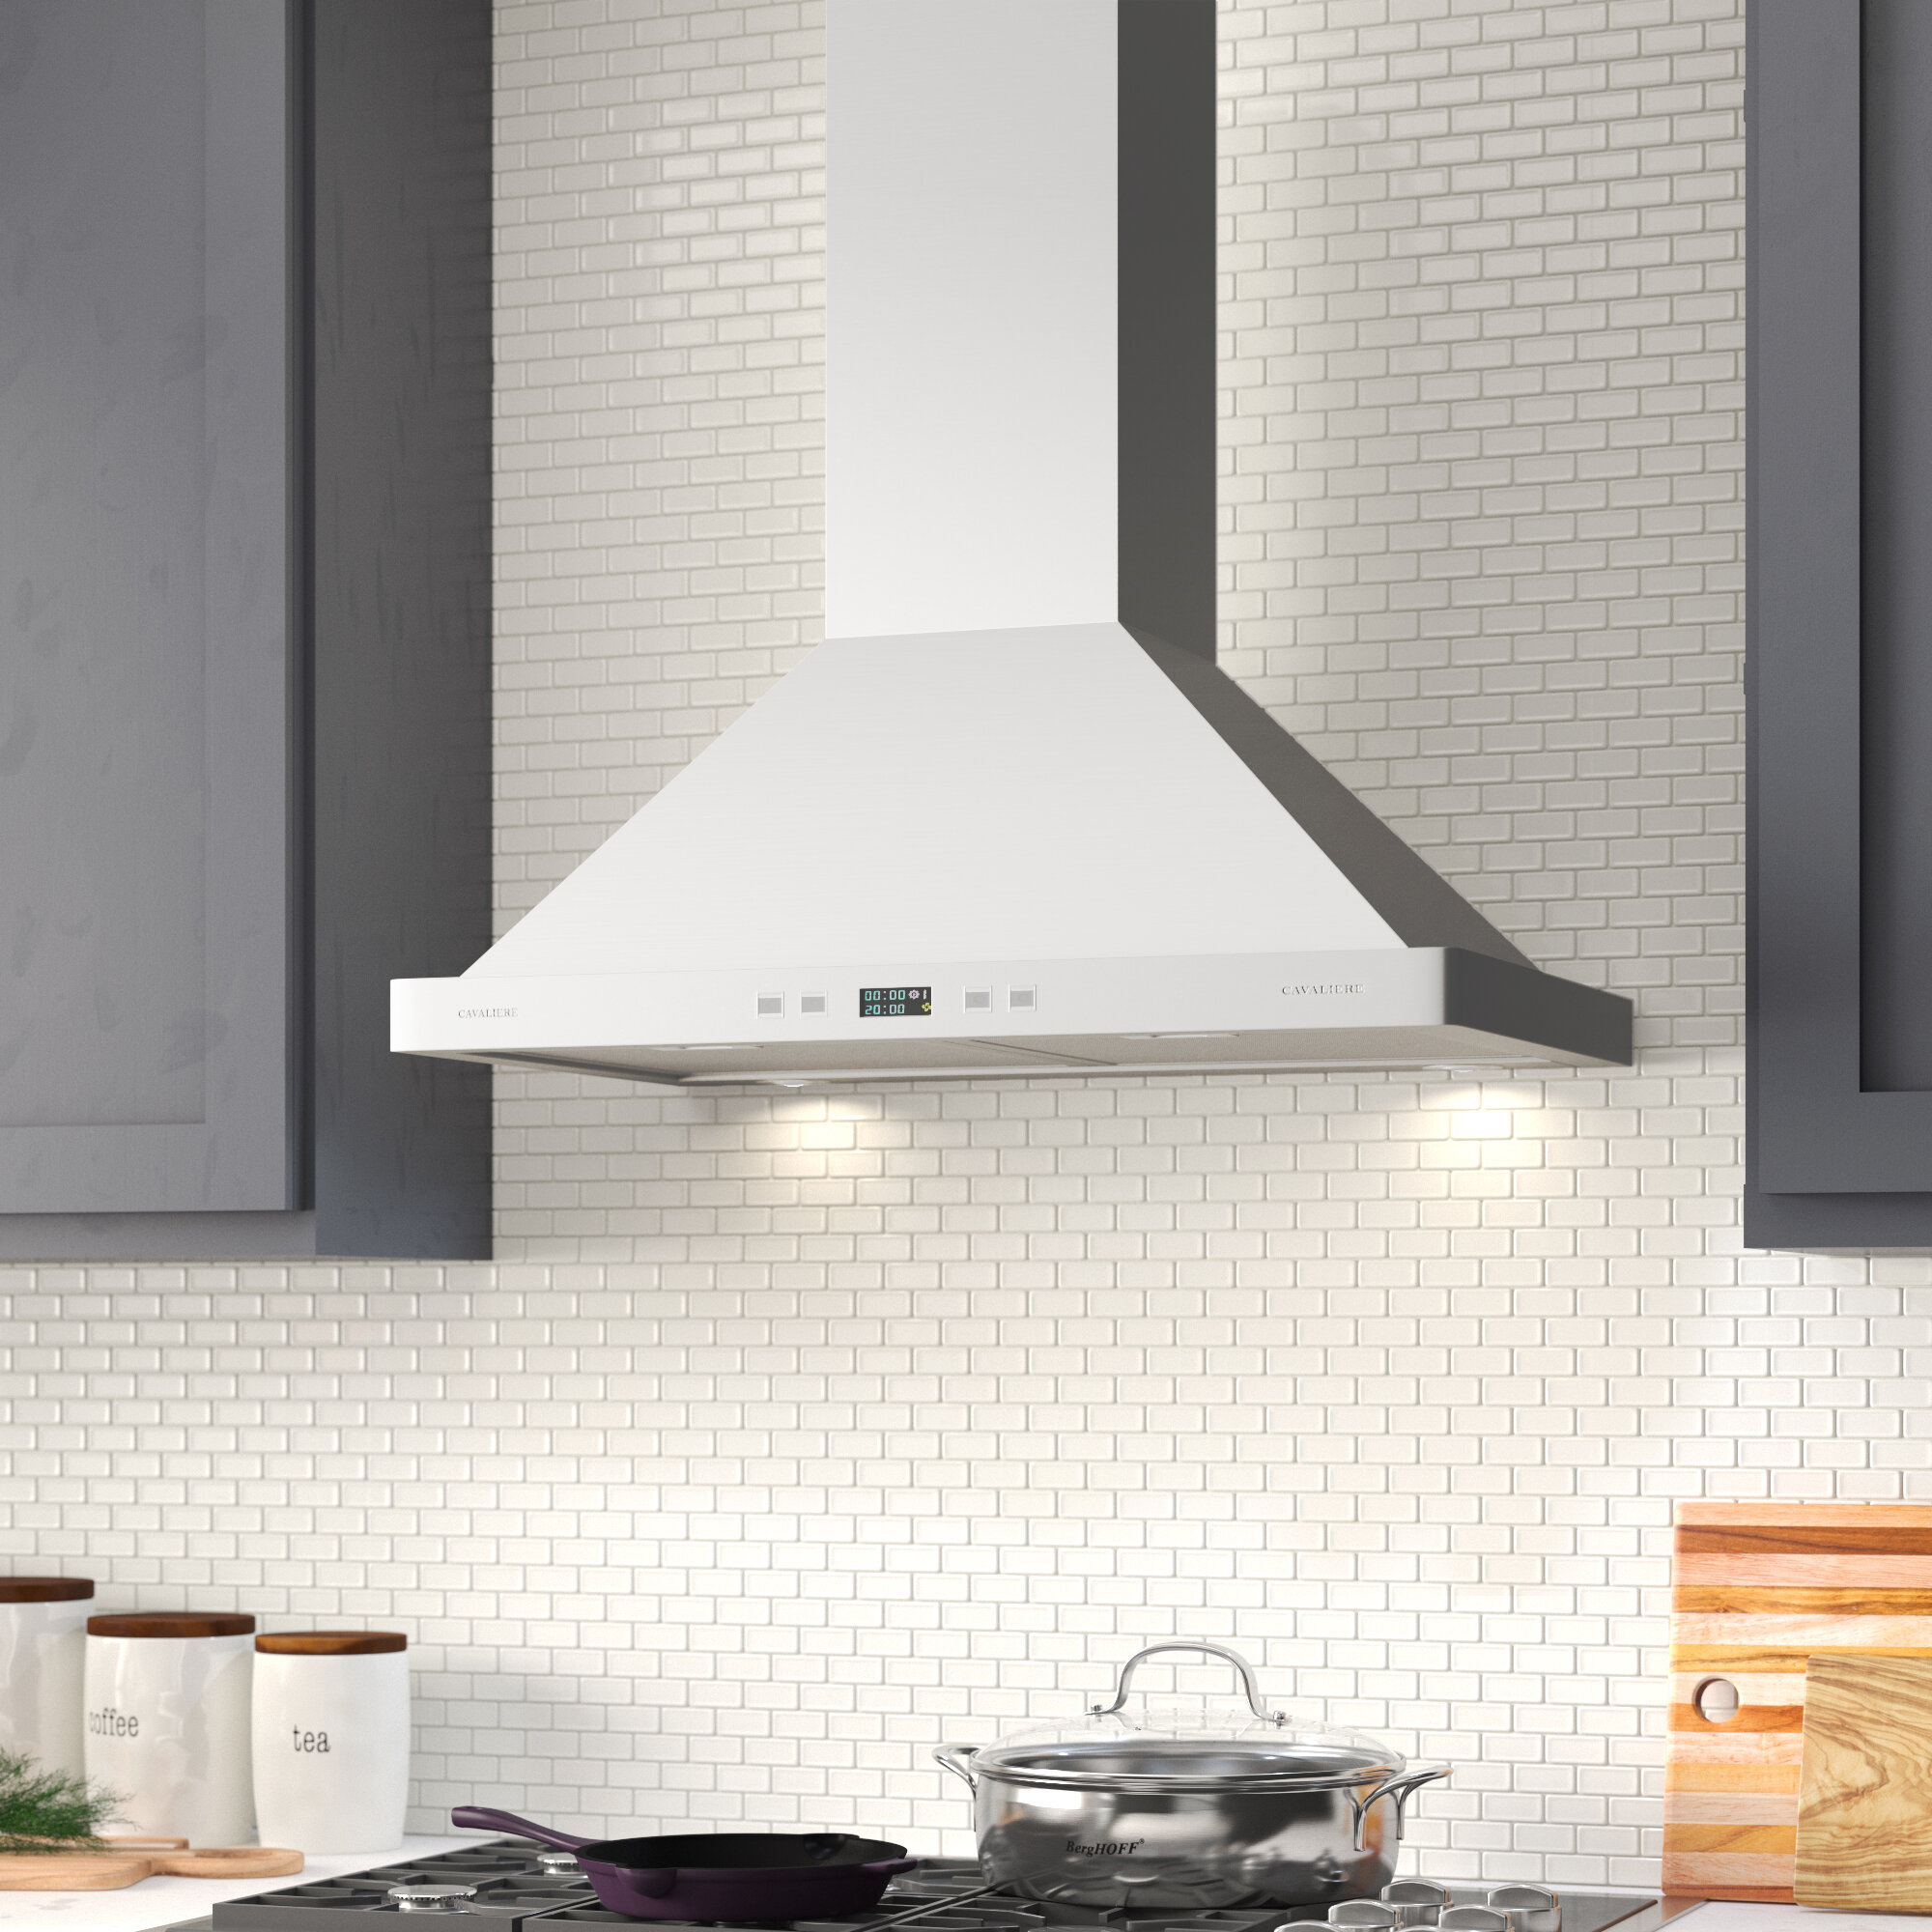 CAVALIERE 30 Wall Mounted Range Hood Brushed Stainless Steel Kitchen Vent 600 CFM With Re-circulation Kit